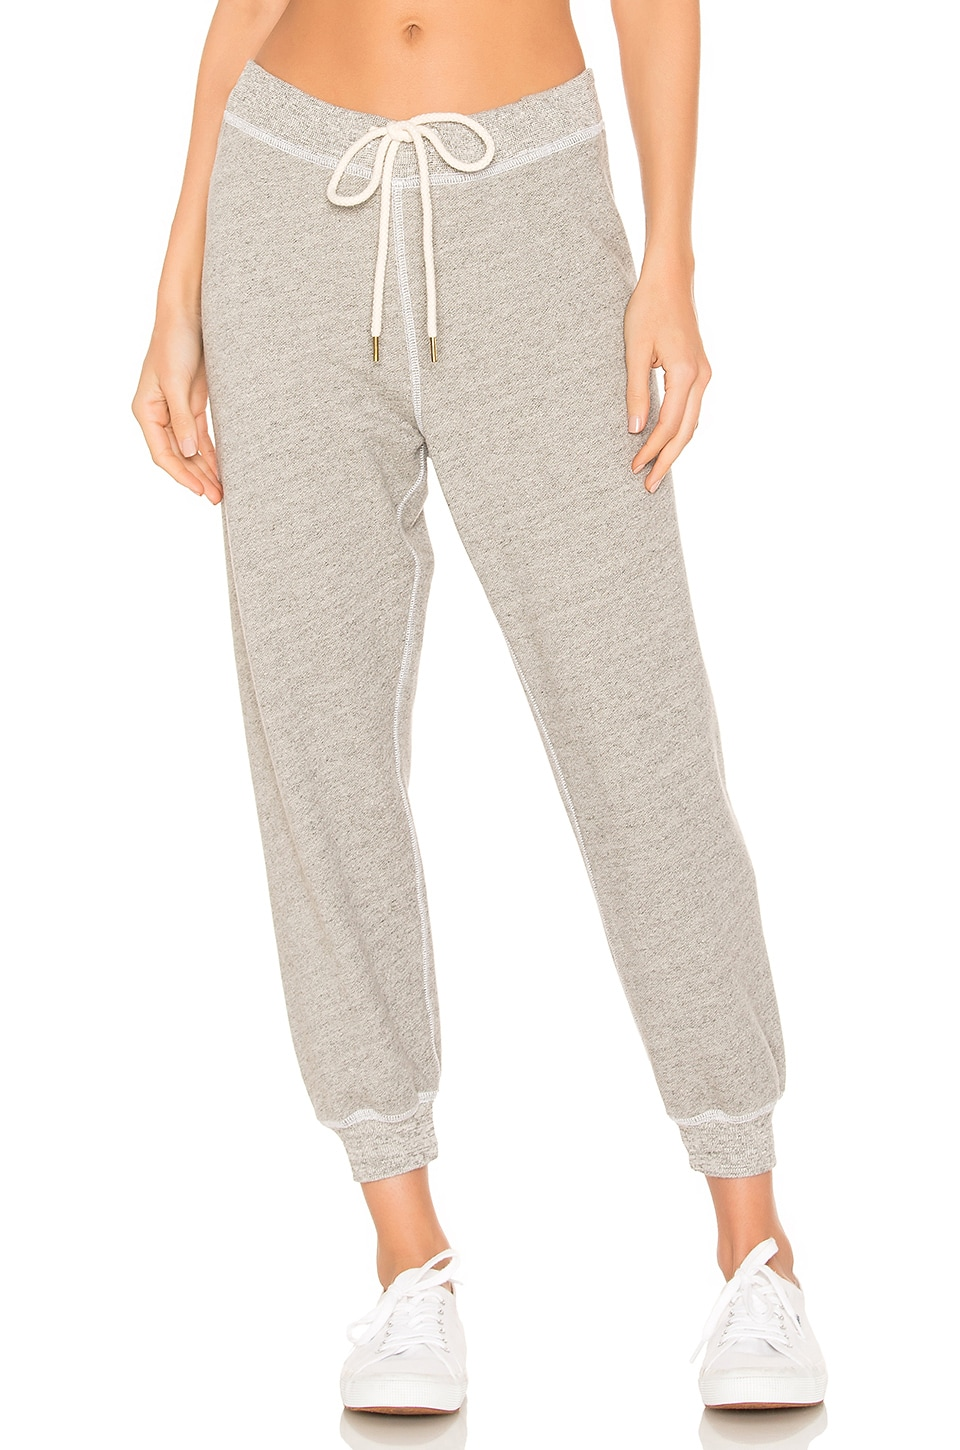 The Great The Cropped Sweatpant in Varsity Grey